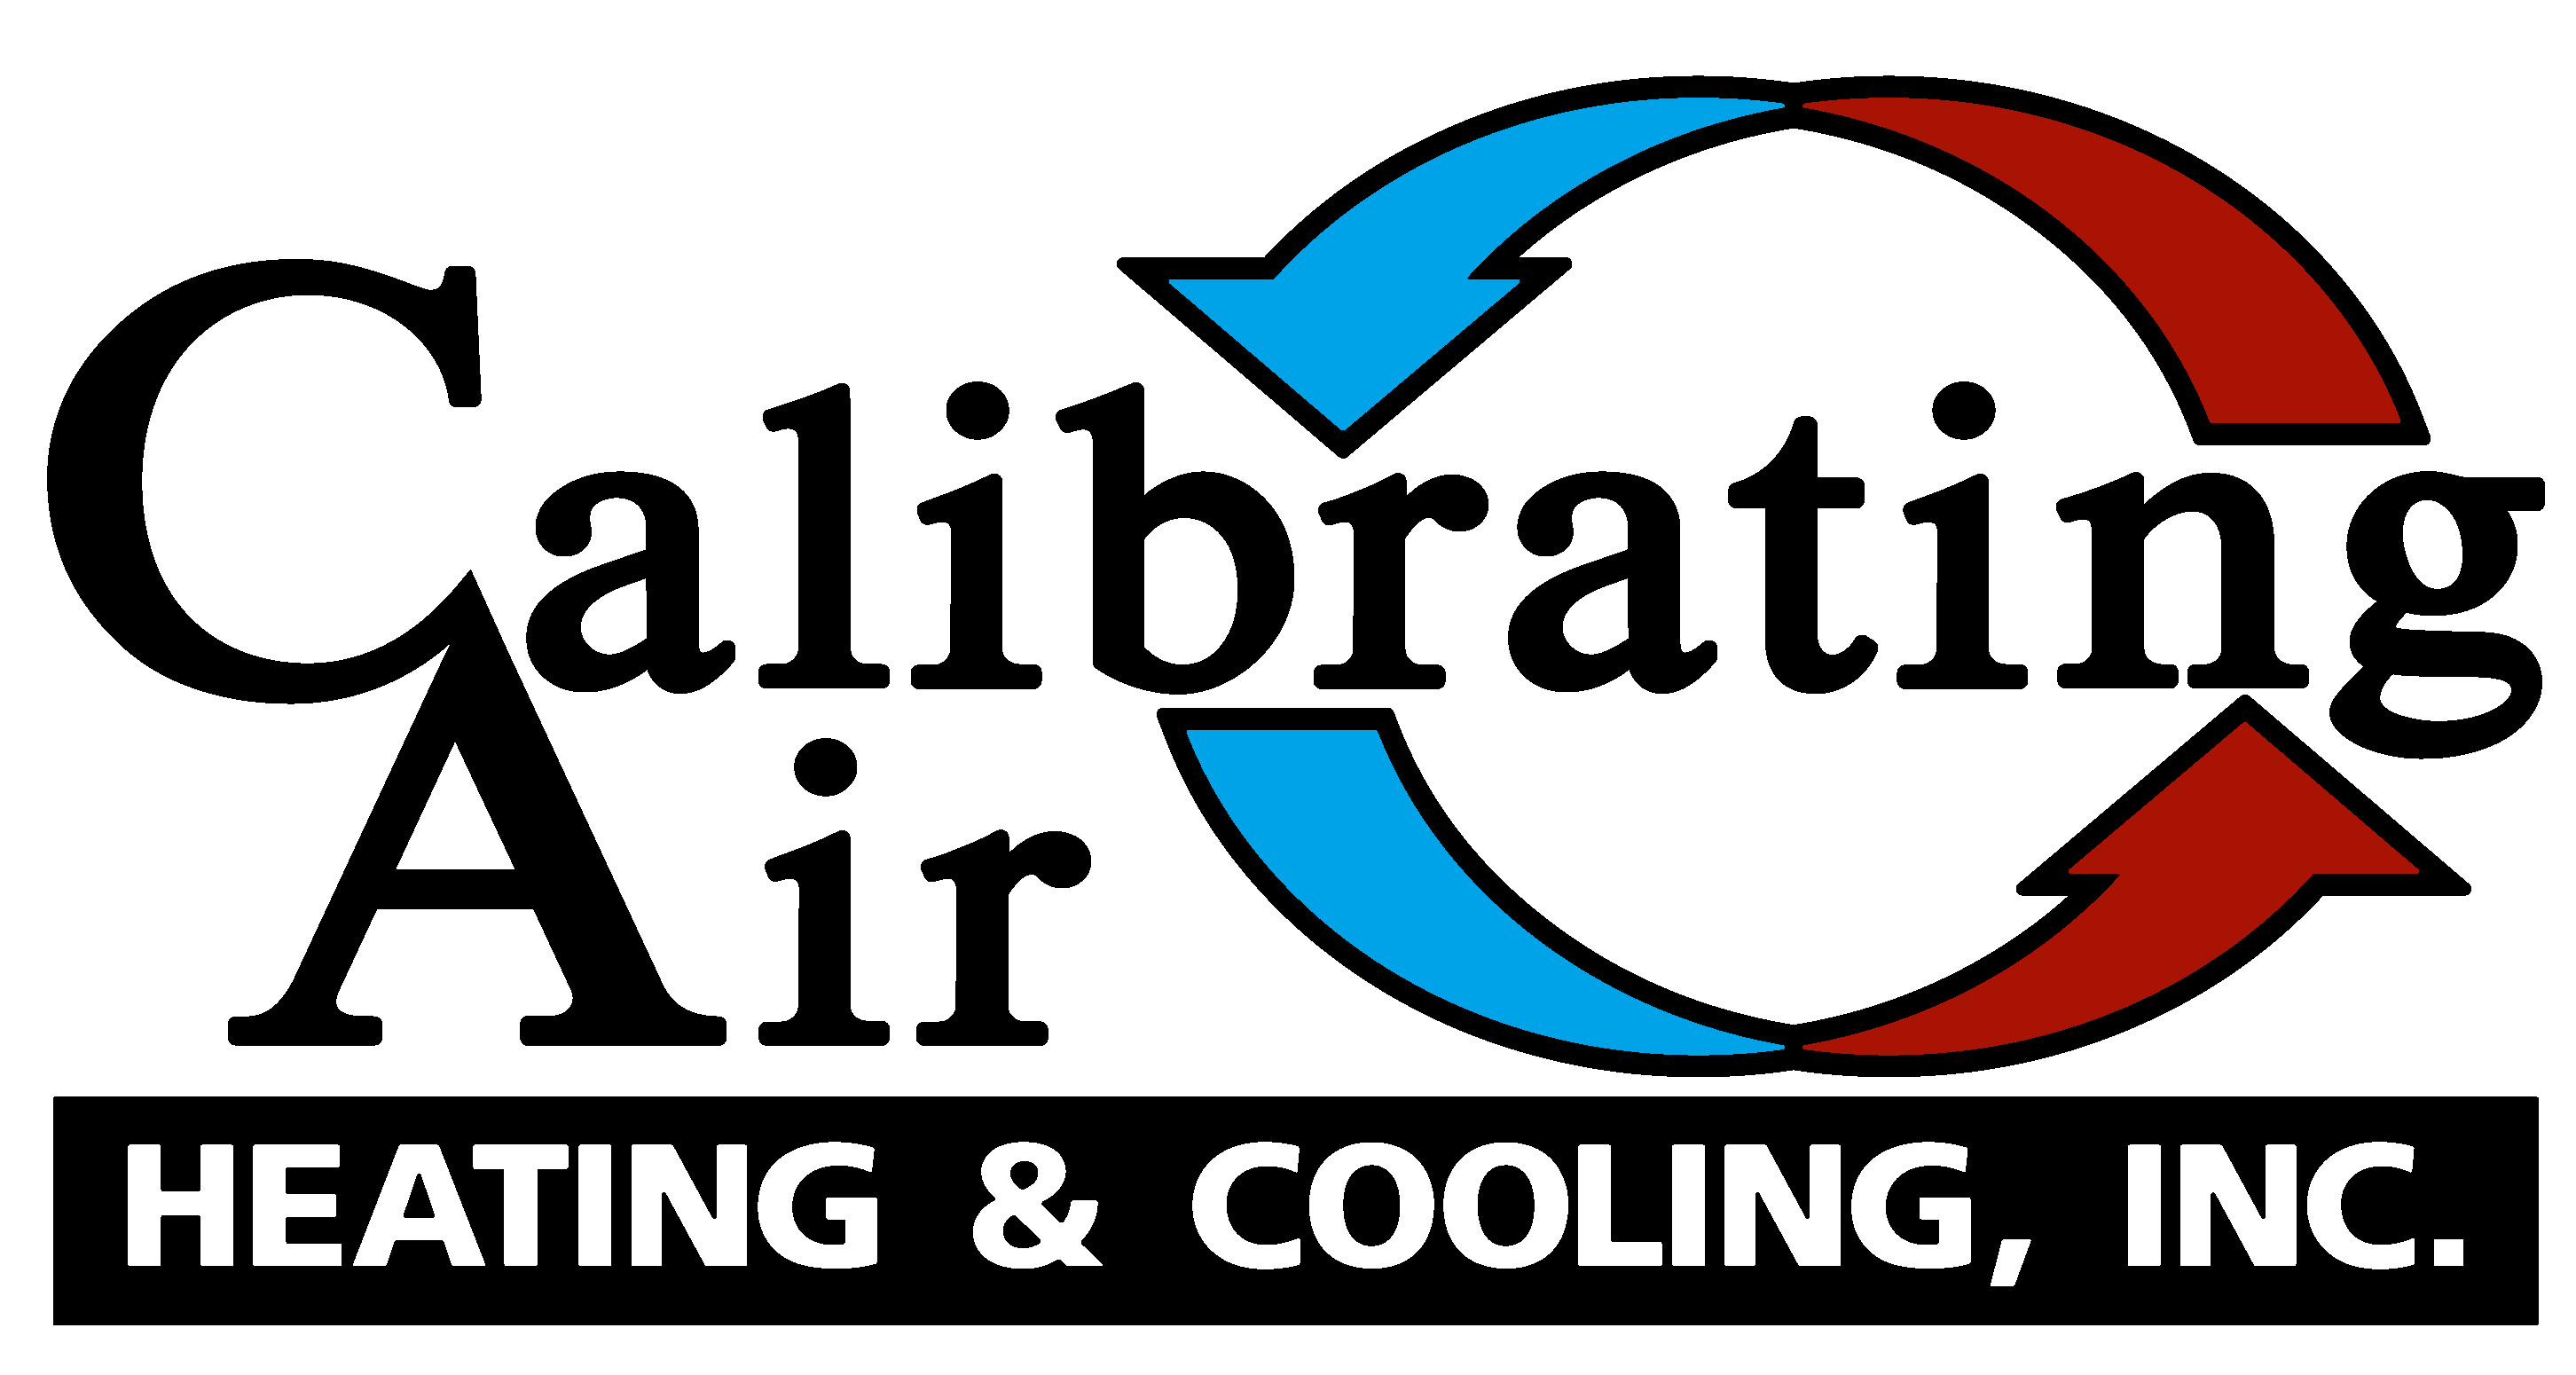 About calibrating air in colorado springs co calibrating air logo xflitez Images